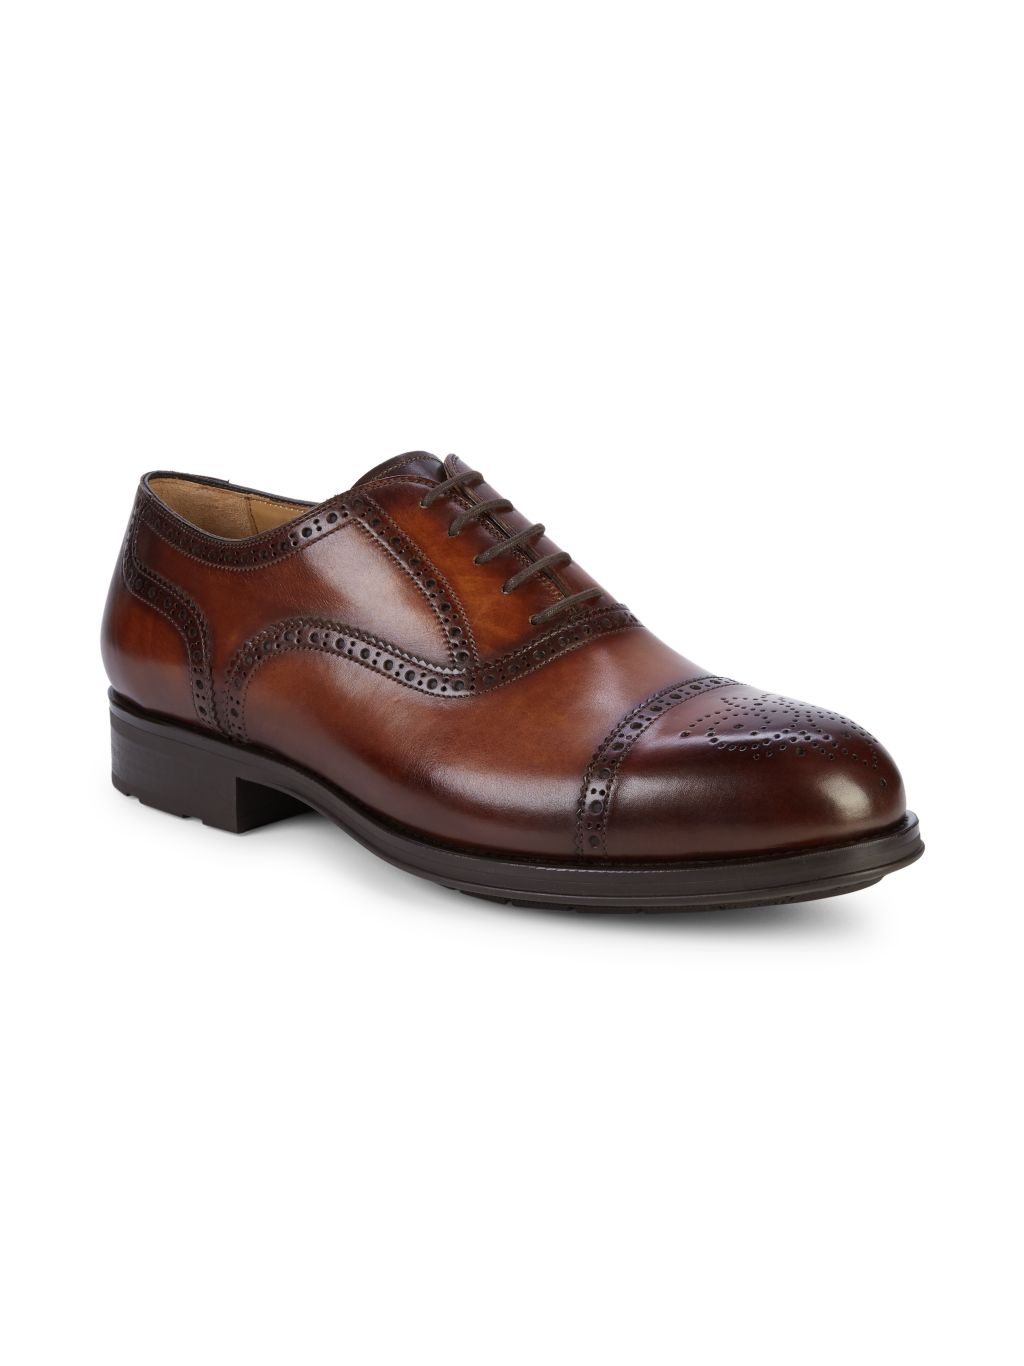 Magnanni Leather Oxford Brogues